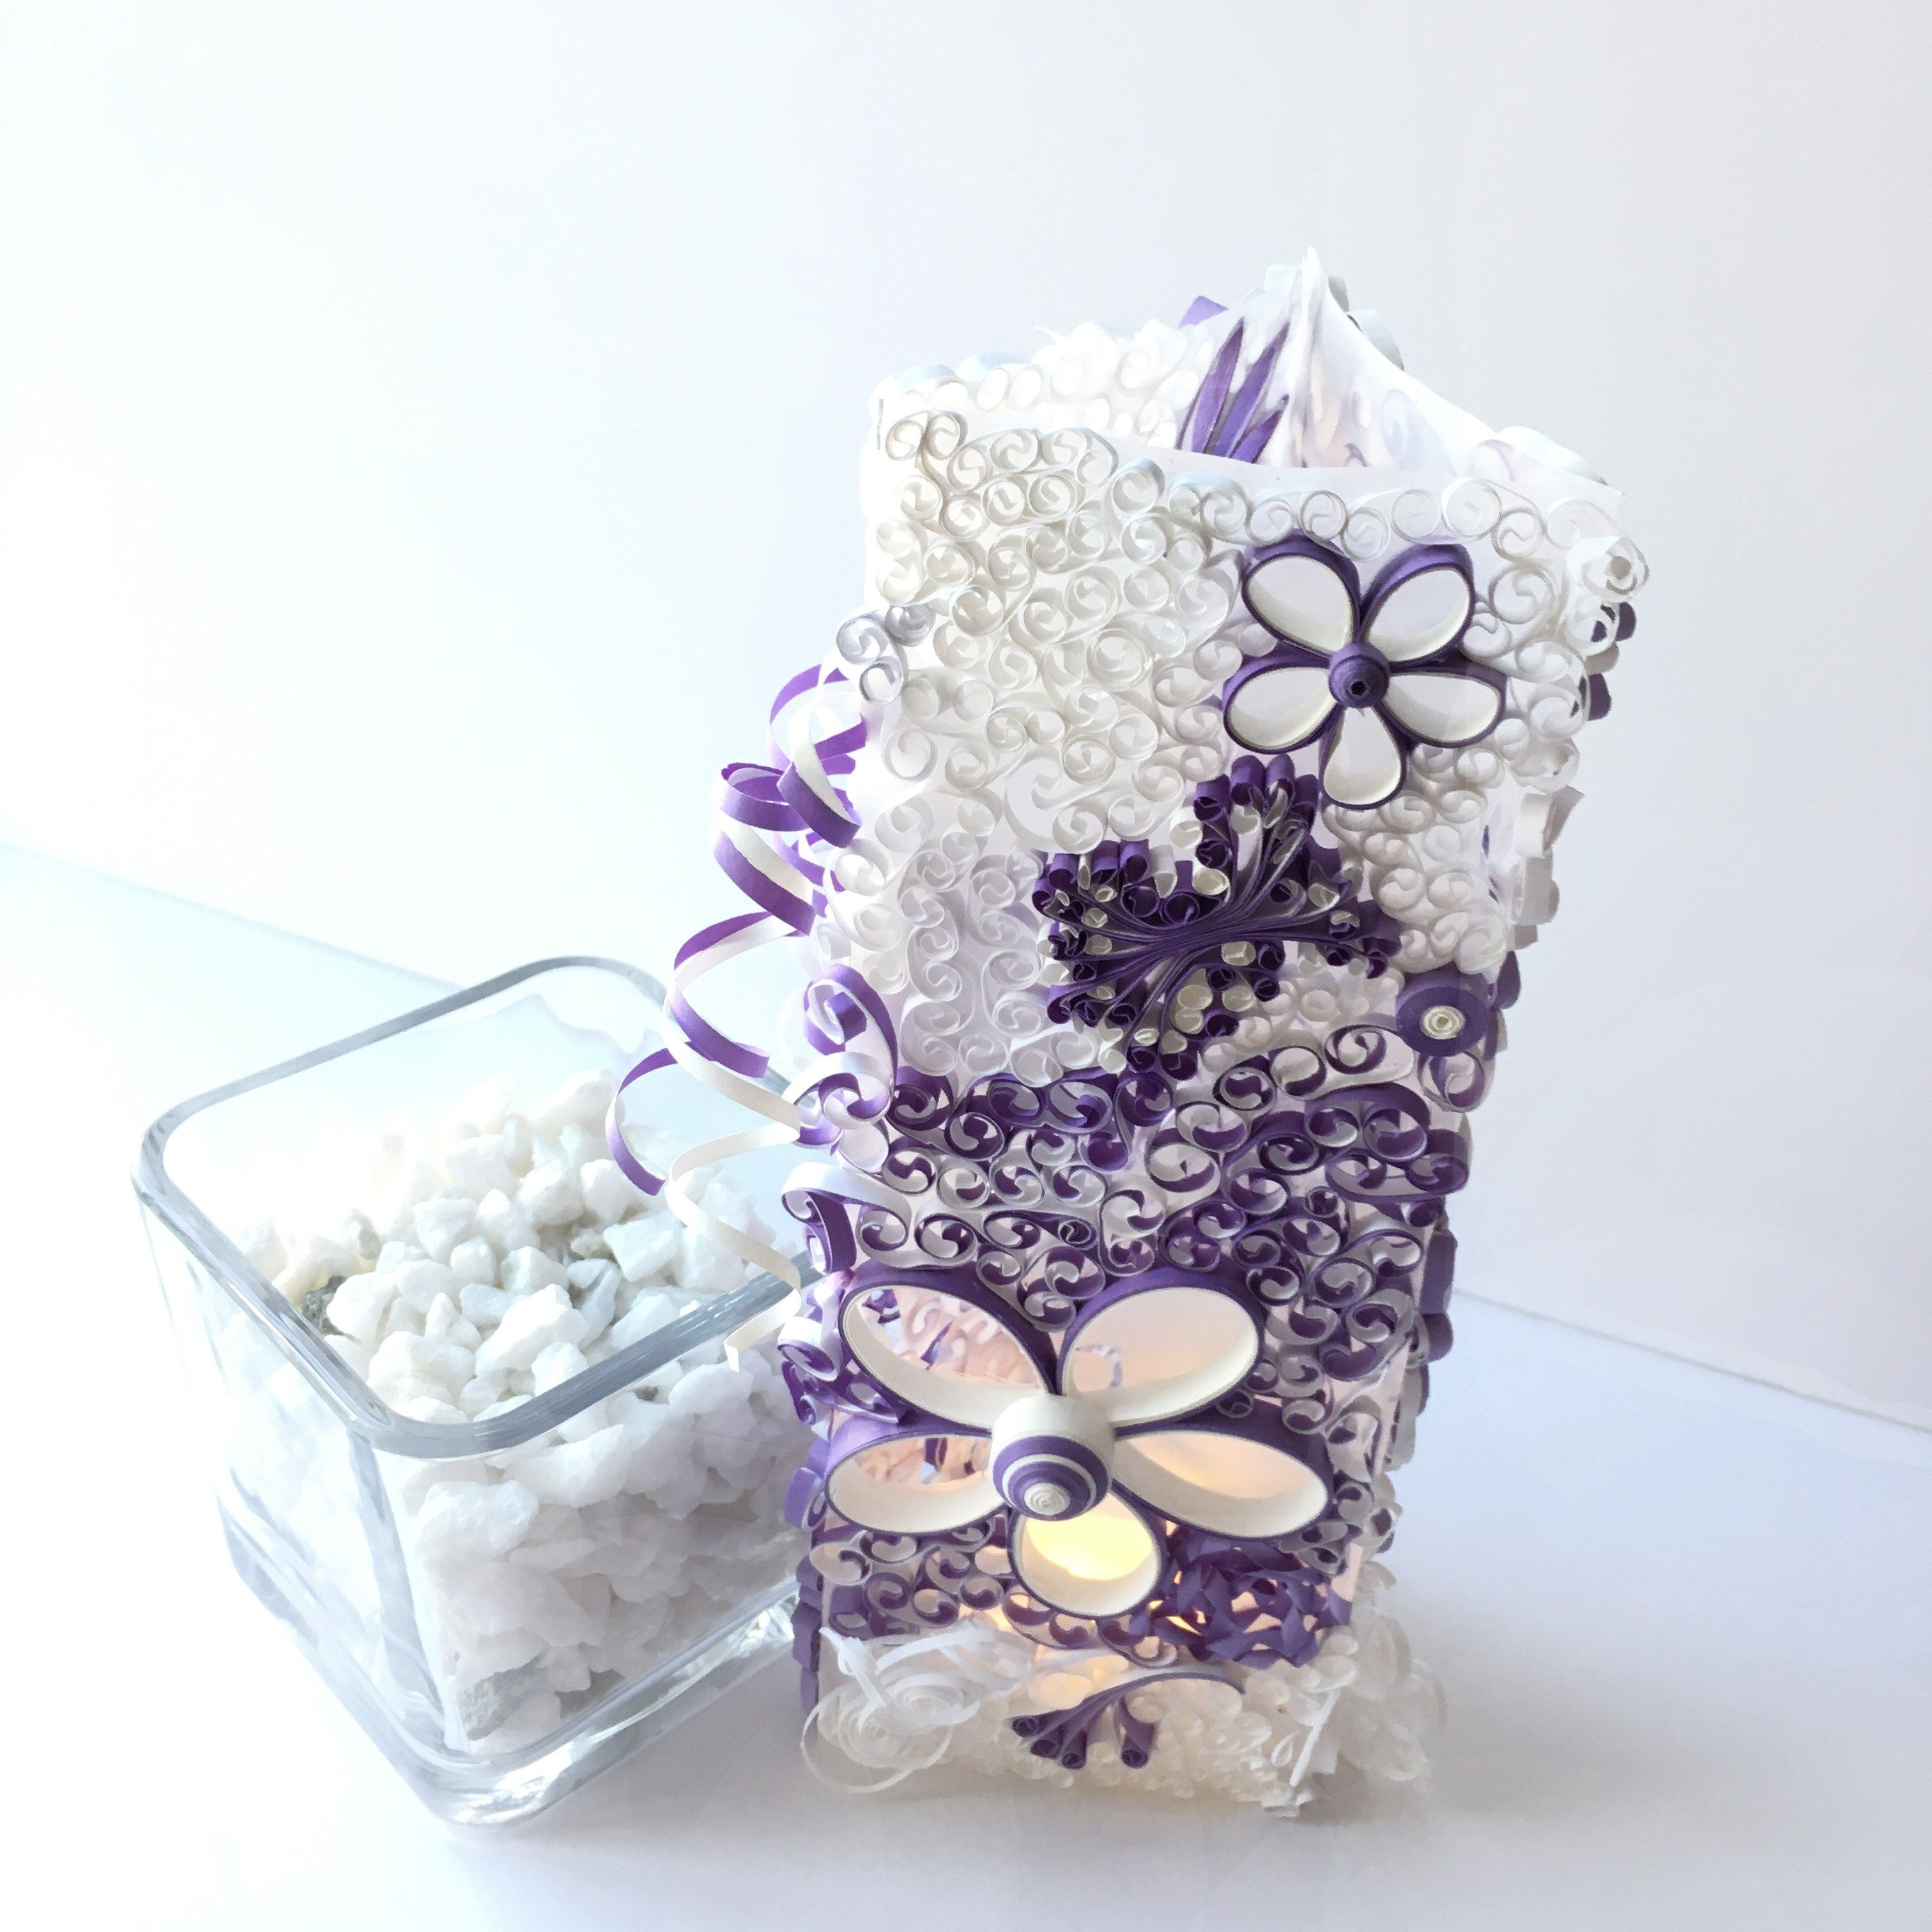 Quilling wedding decorations october 2018 Purple and White Luminary for Wedding Centerpiece or Personalized